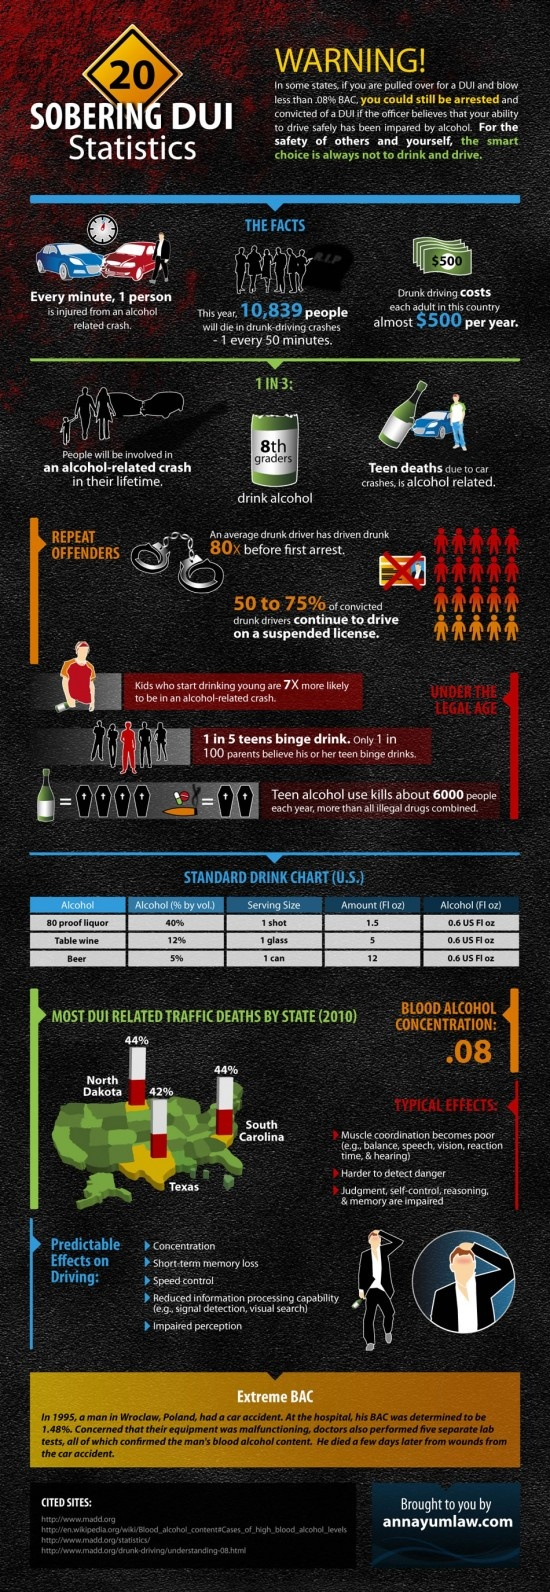 INFOGRAPHIC: 20 SOBERING DUI STATISTICS